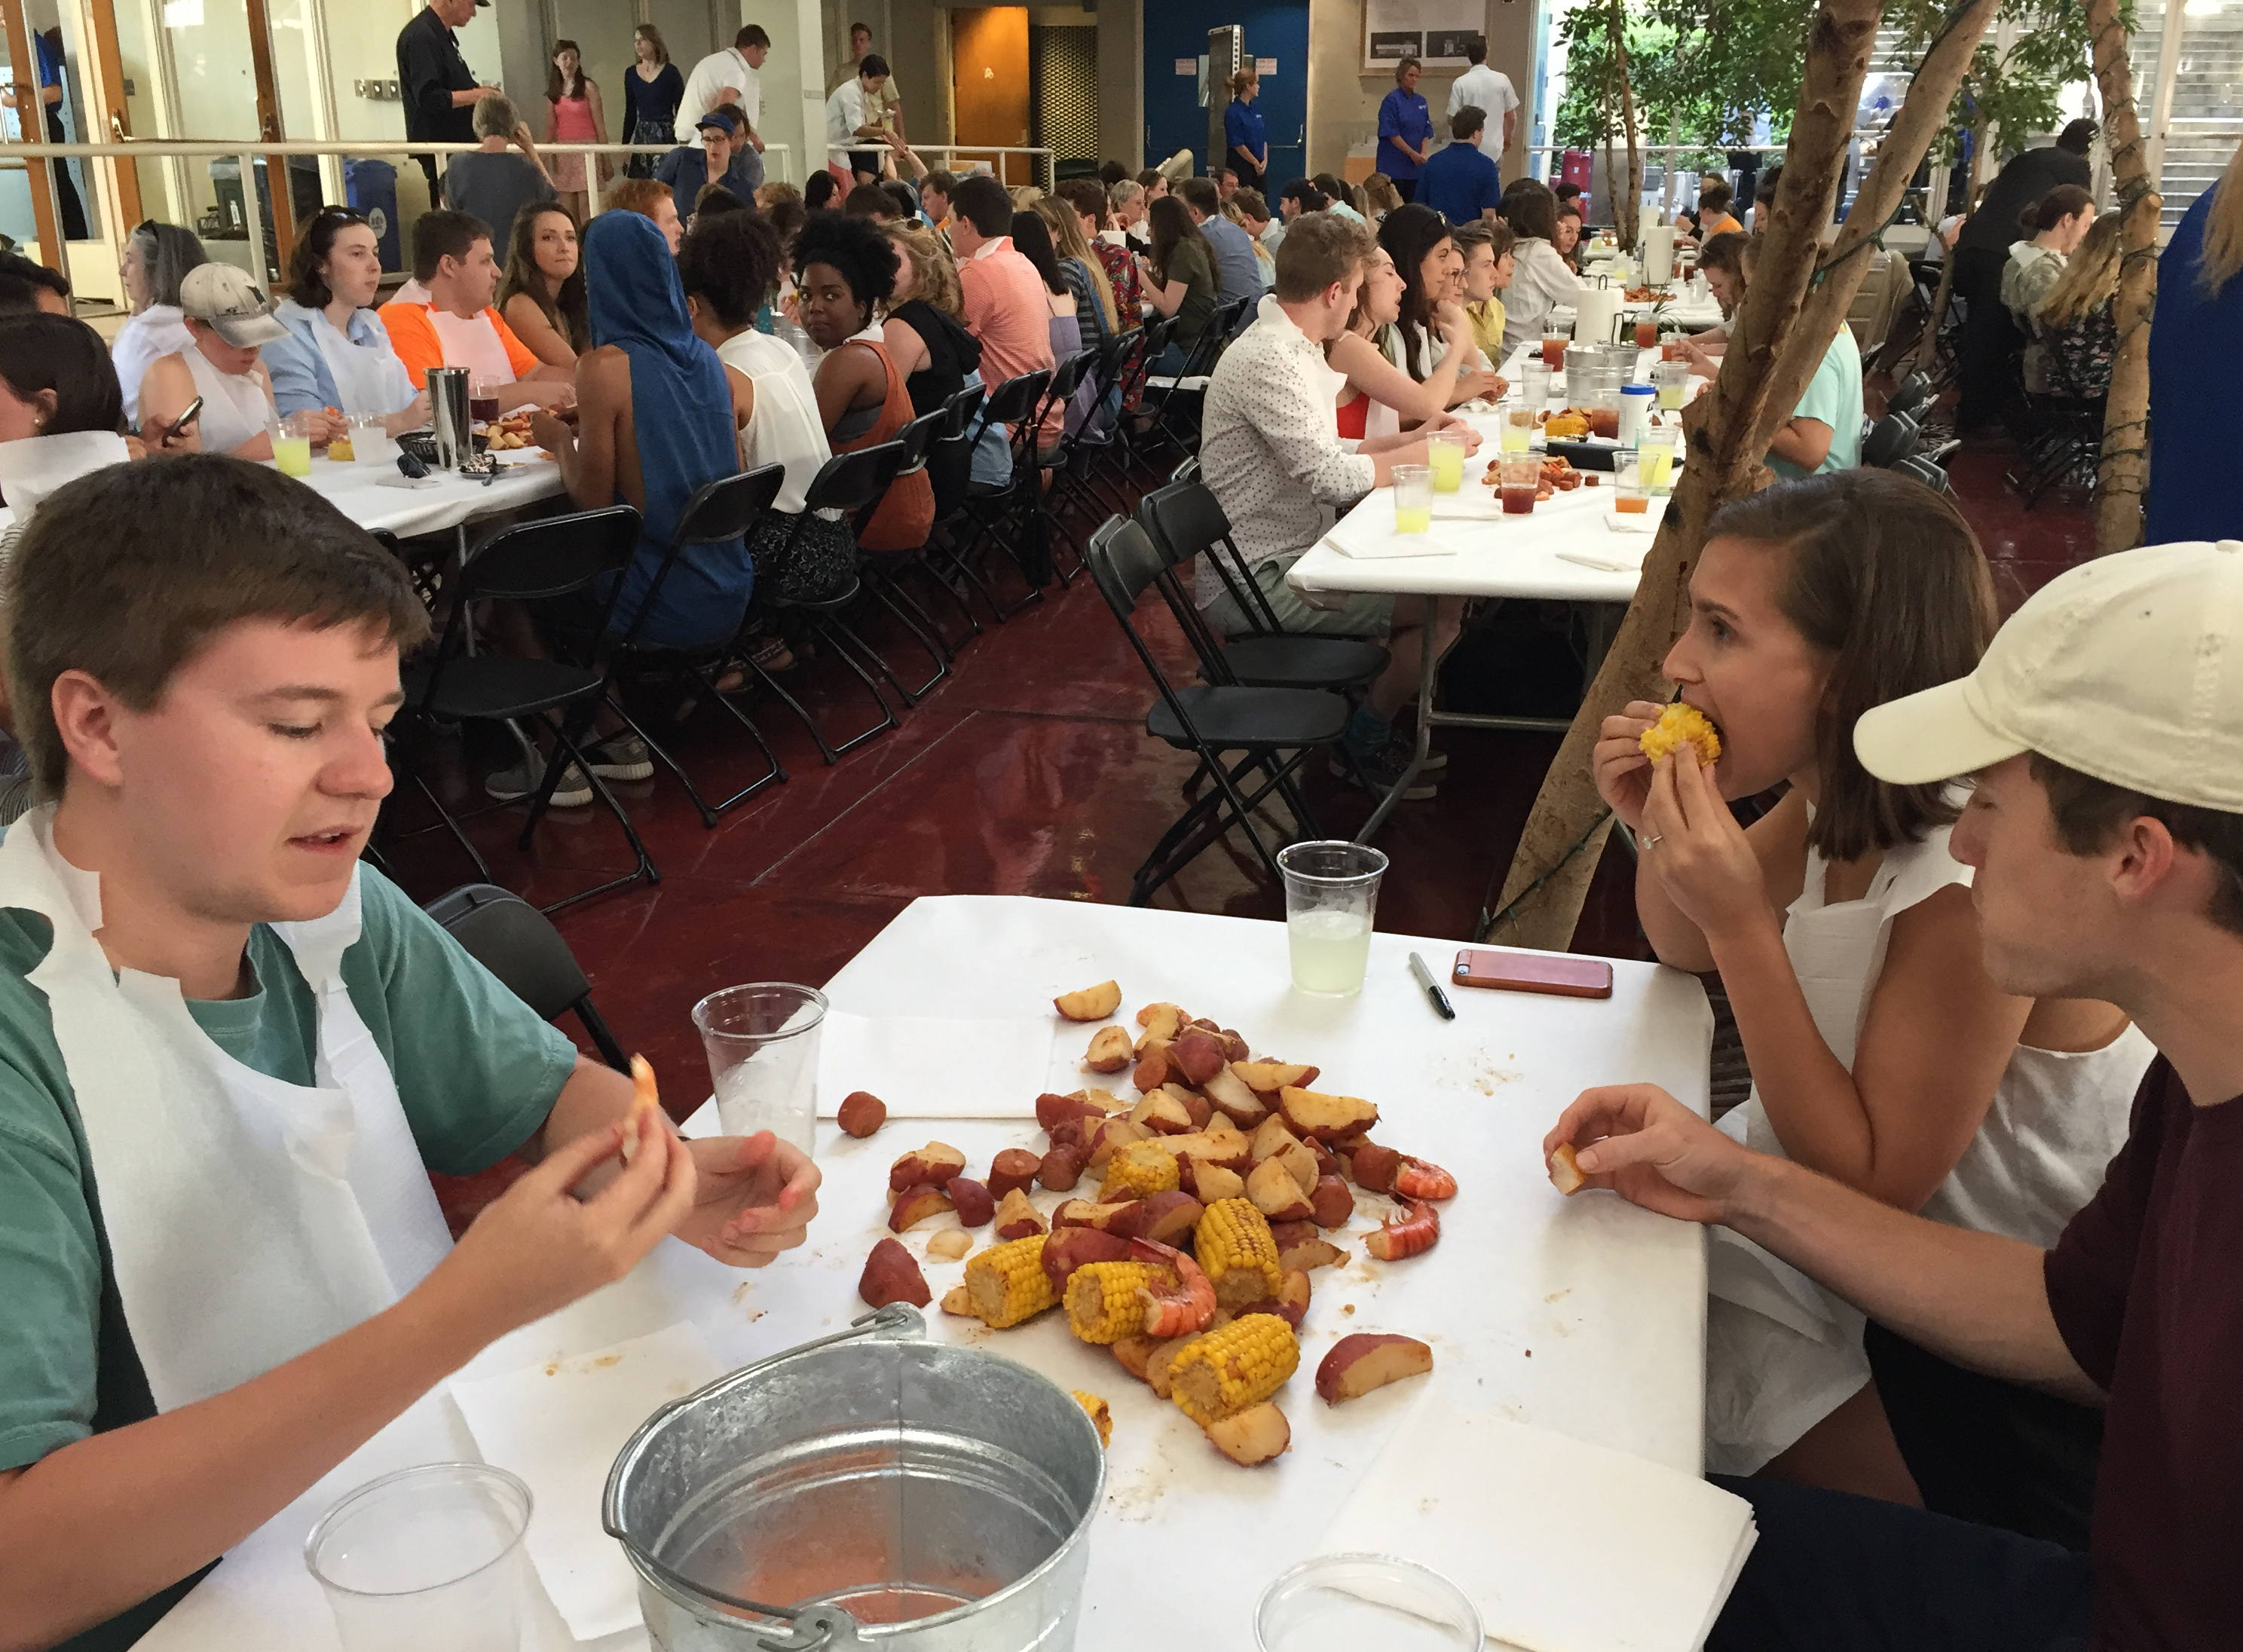 Students enjoying shrimp boil in the Art + Architecture Building